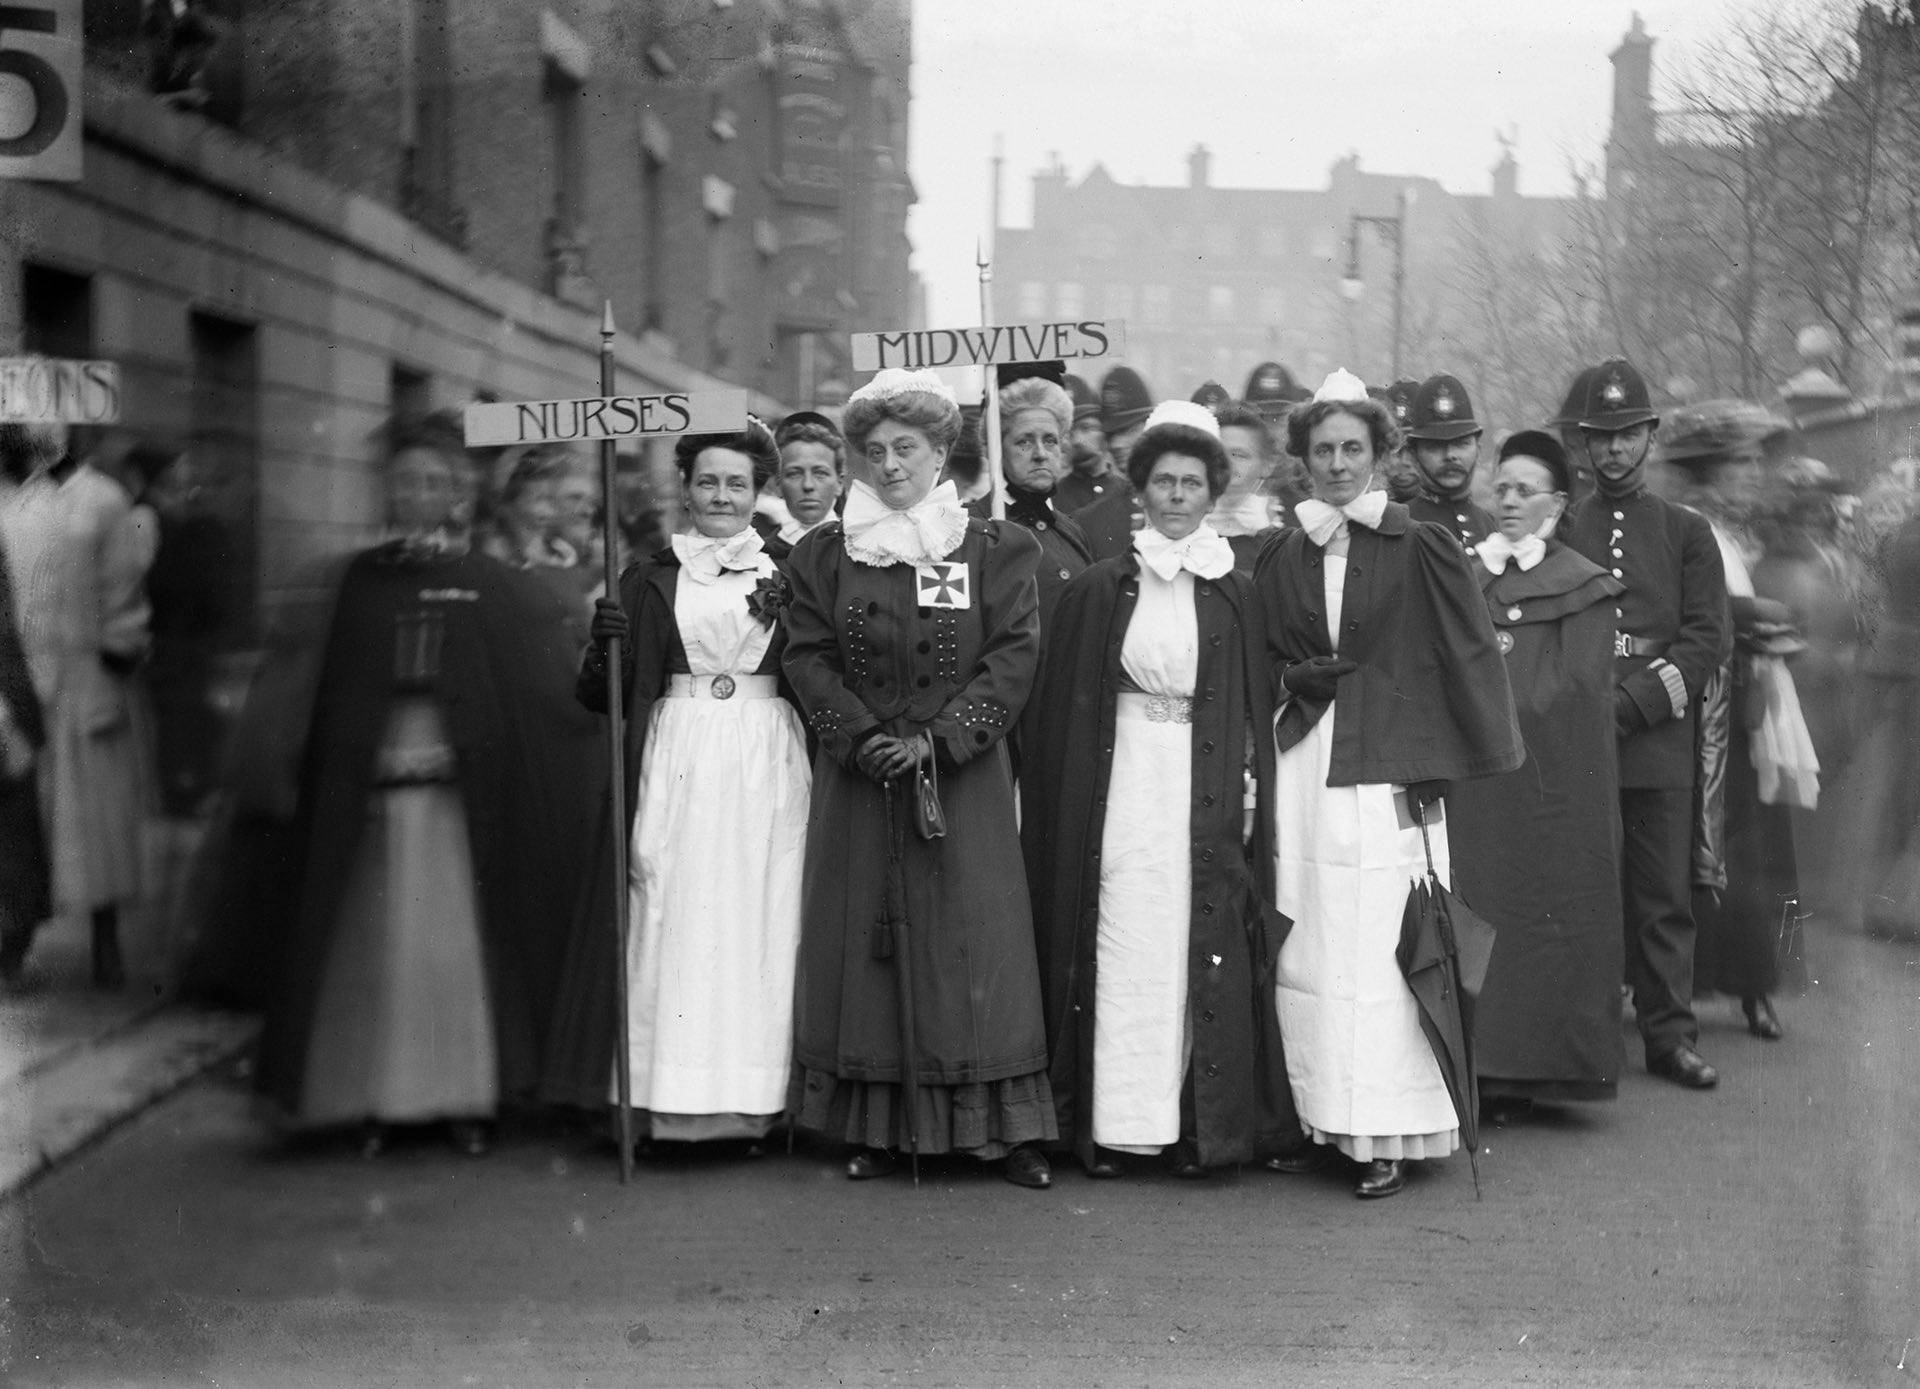 #picturethis: Soldiers in petticoats: portraits of the suffragettes